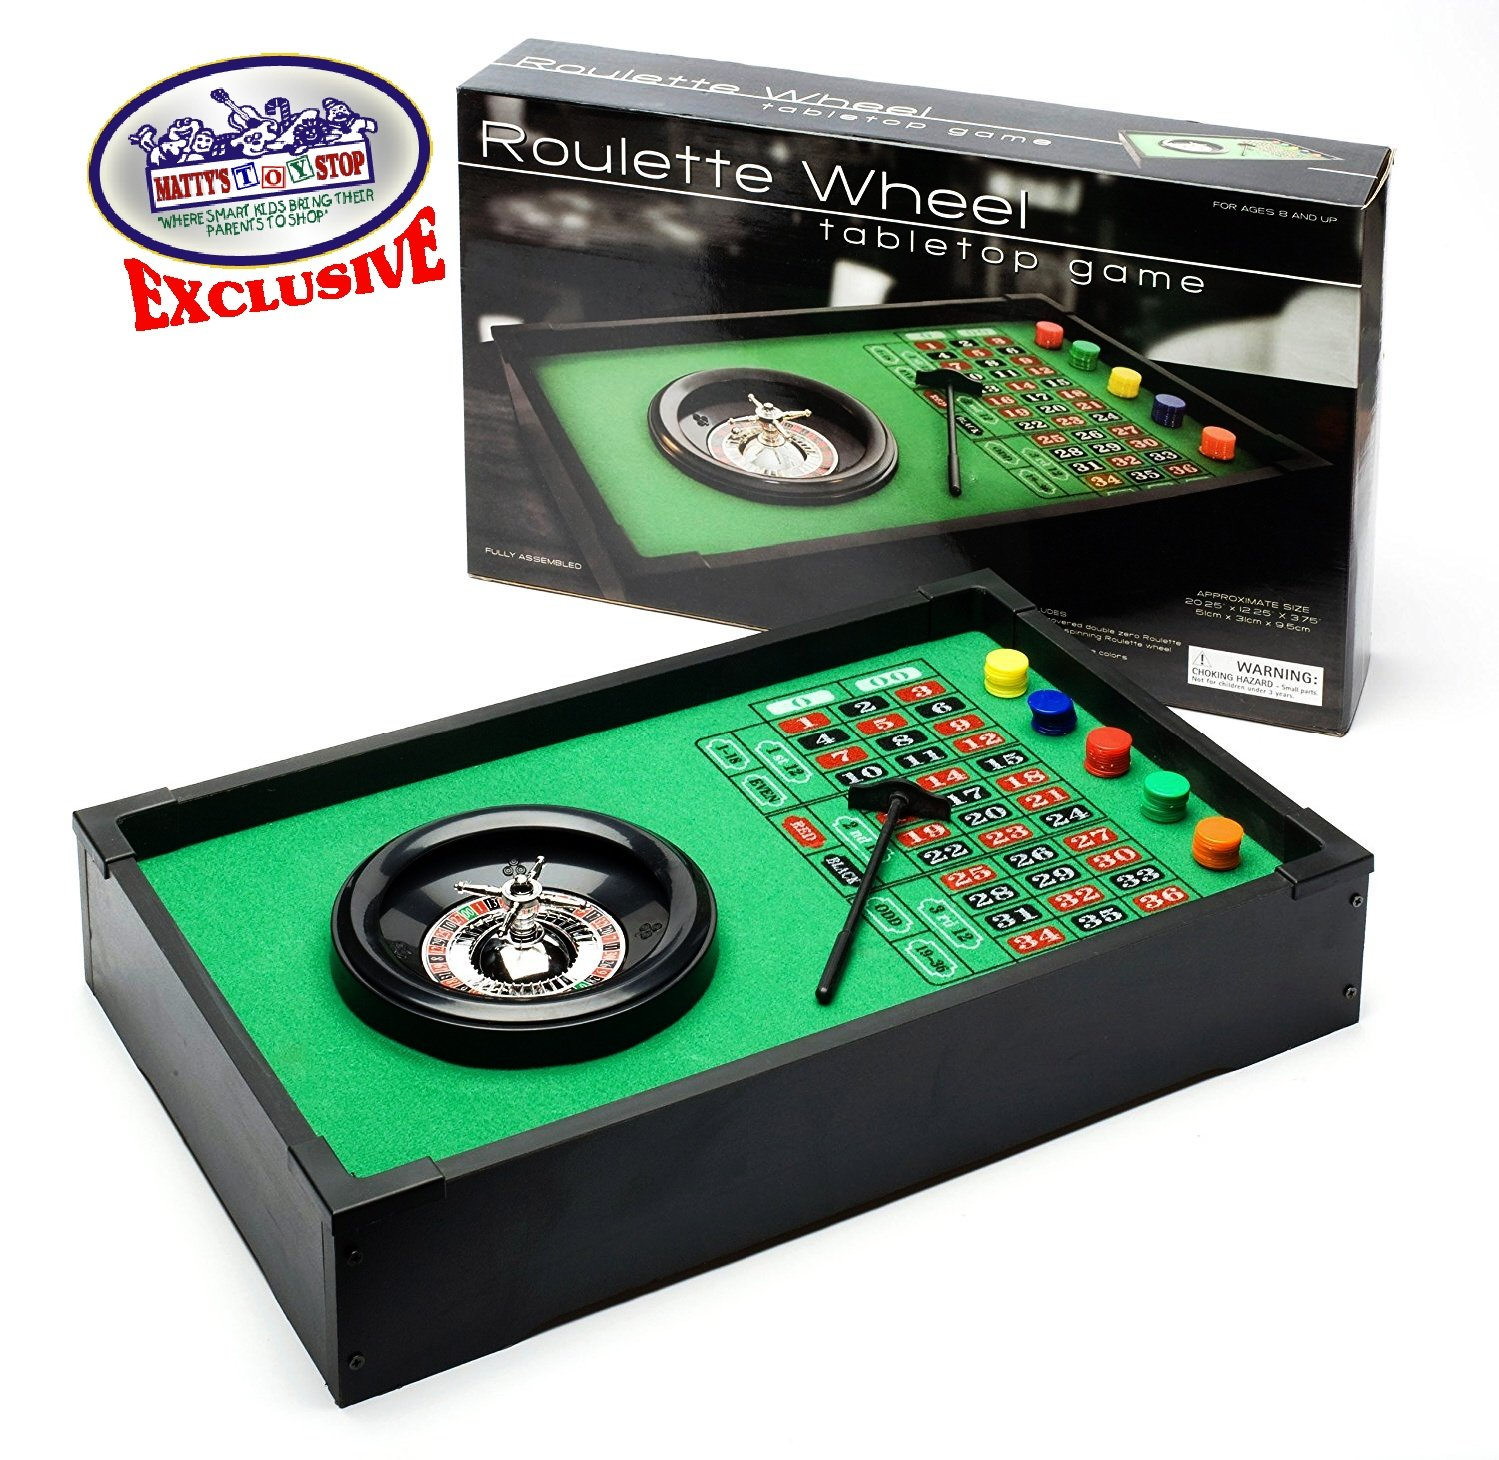 Deluxe Table Top Roulette Wheel with 50 Chips, Rake, Spinning Wheel & Double Zero Style Felt Covered Wood Table by Matty's Toy Stop